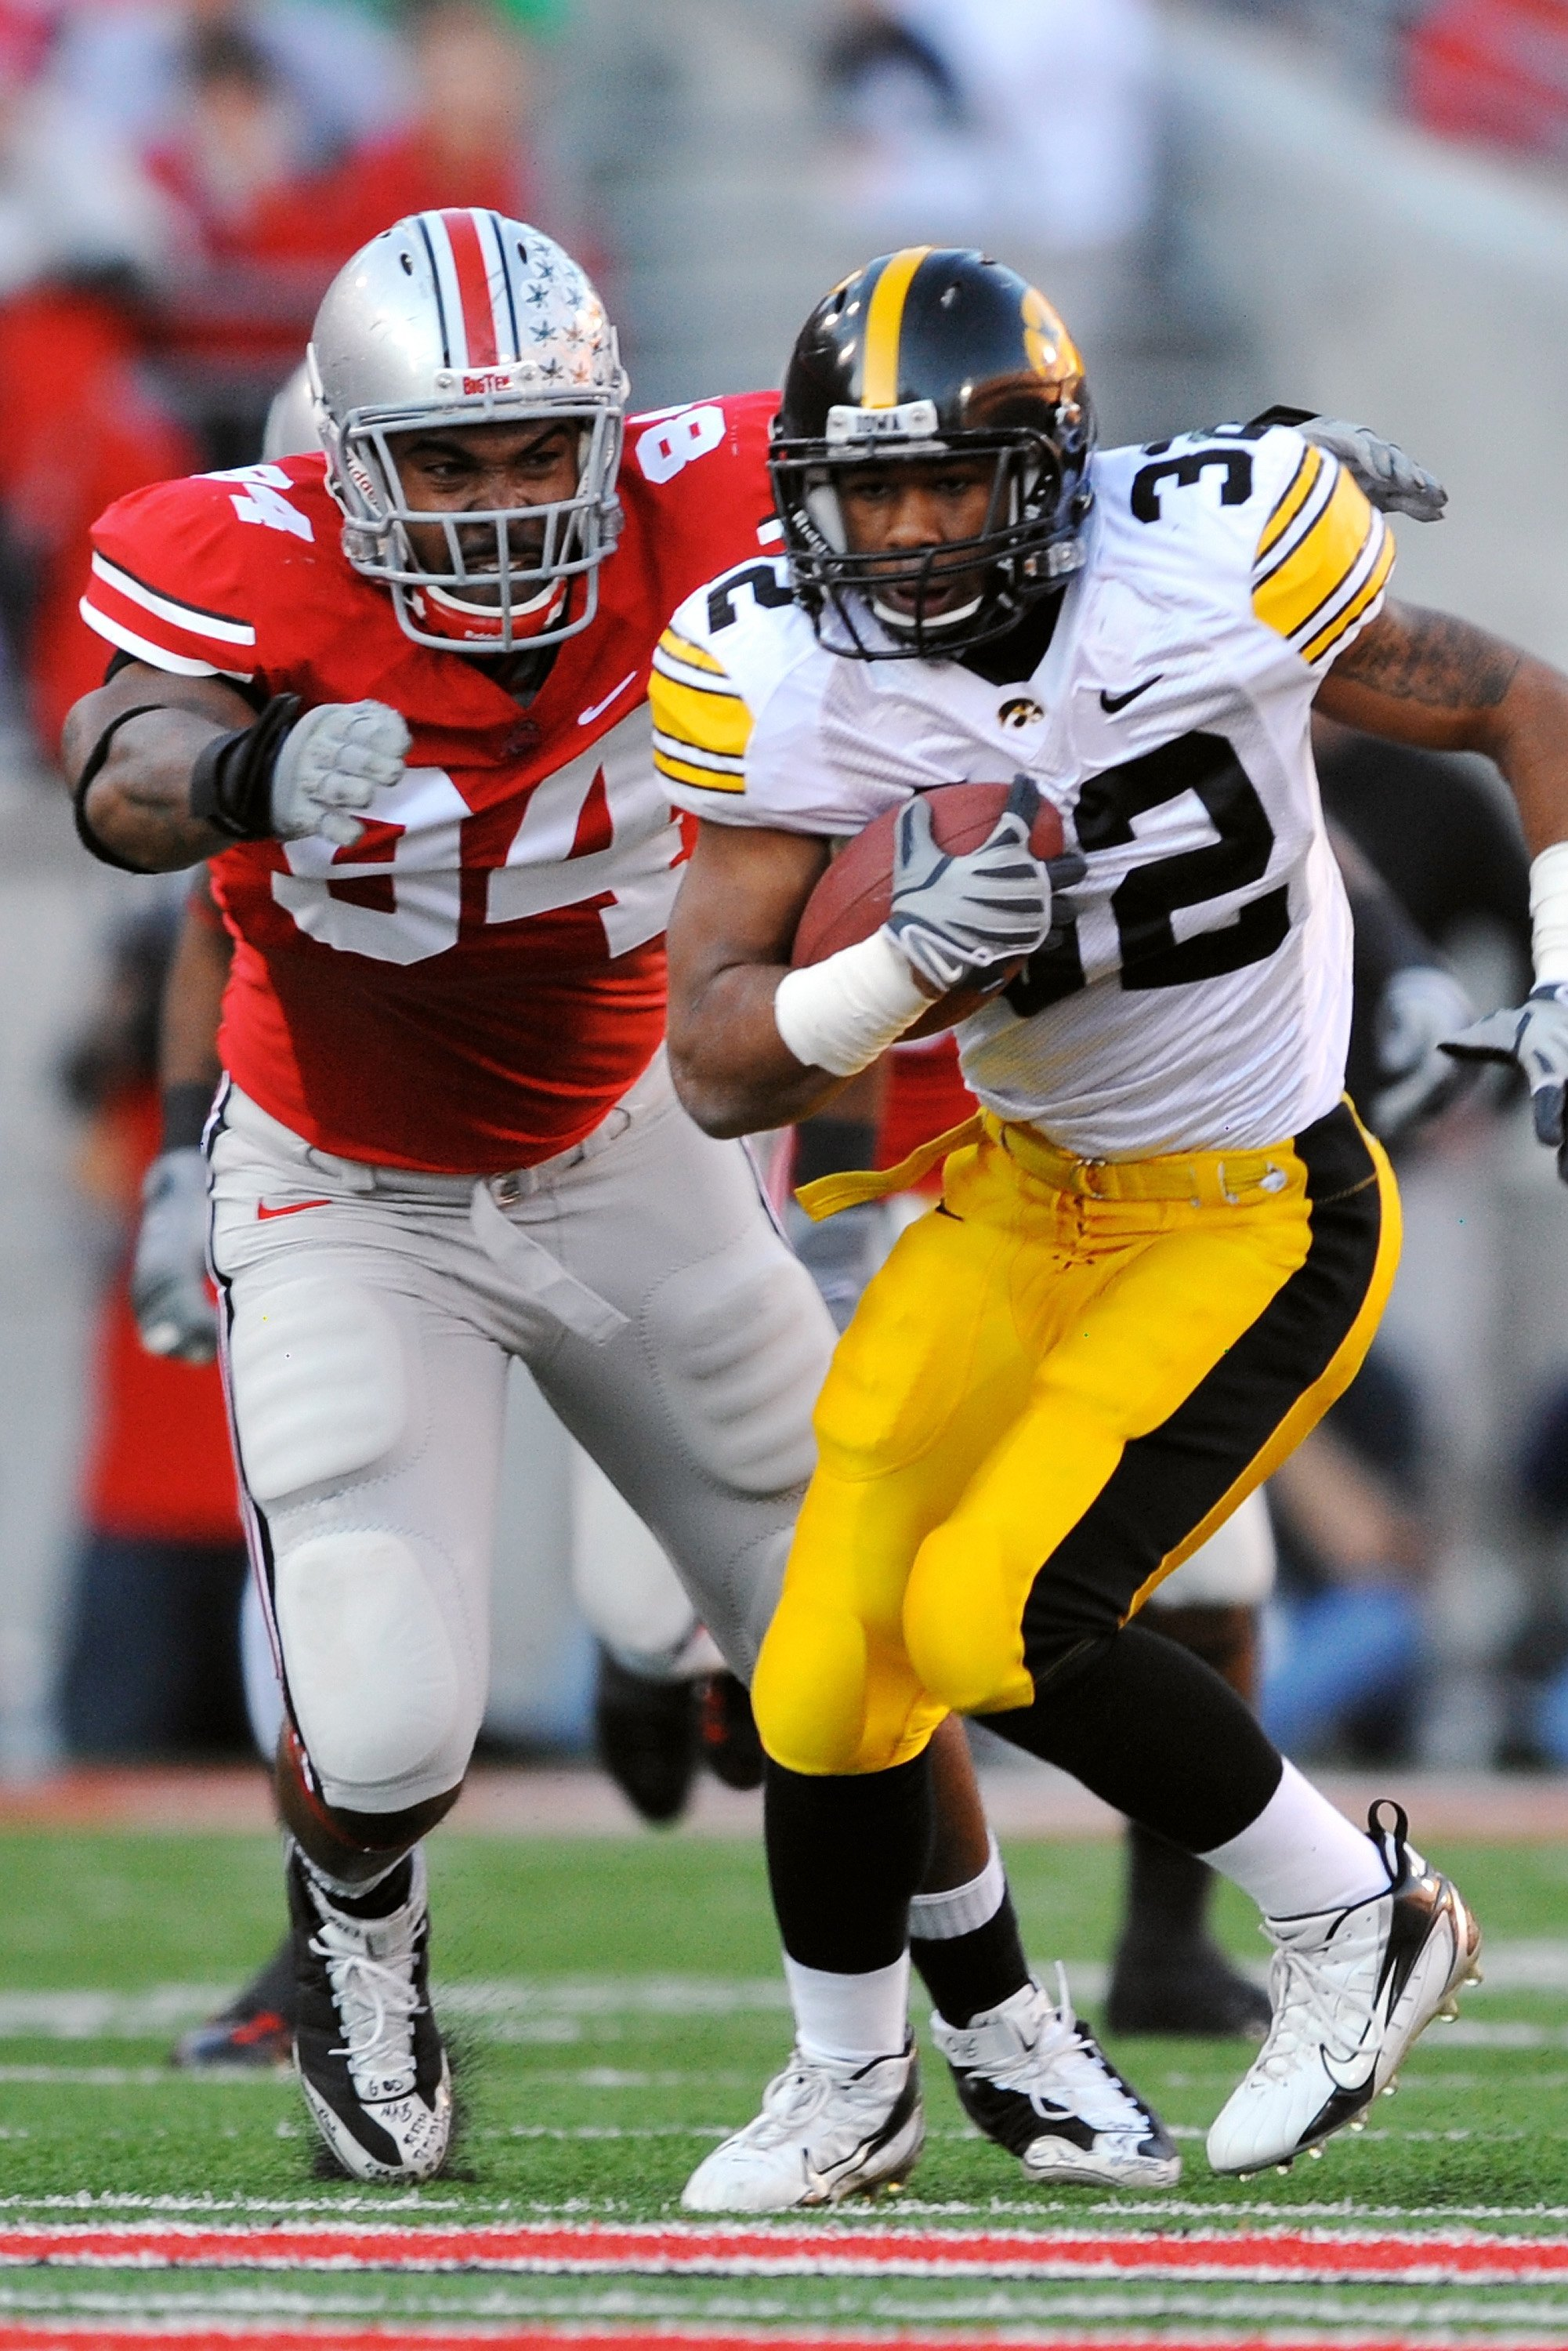 COLUMBUS, OH - NOVEMBER 14:  Defensive tackle Doug Worthington #84 of the Ohio State Buckeyes chases down running back Adam Robinson #32 of the Iowa Hawkeyes at Ohio Stadium on November 14, 2009 in Columbus, Ohio.  (Photo by Jamie Sabau/Getty Images)